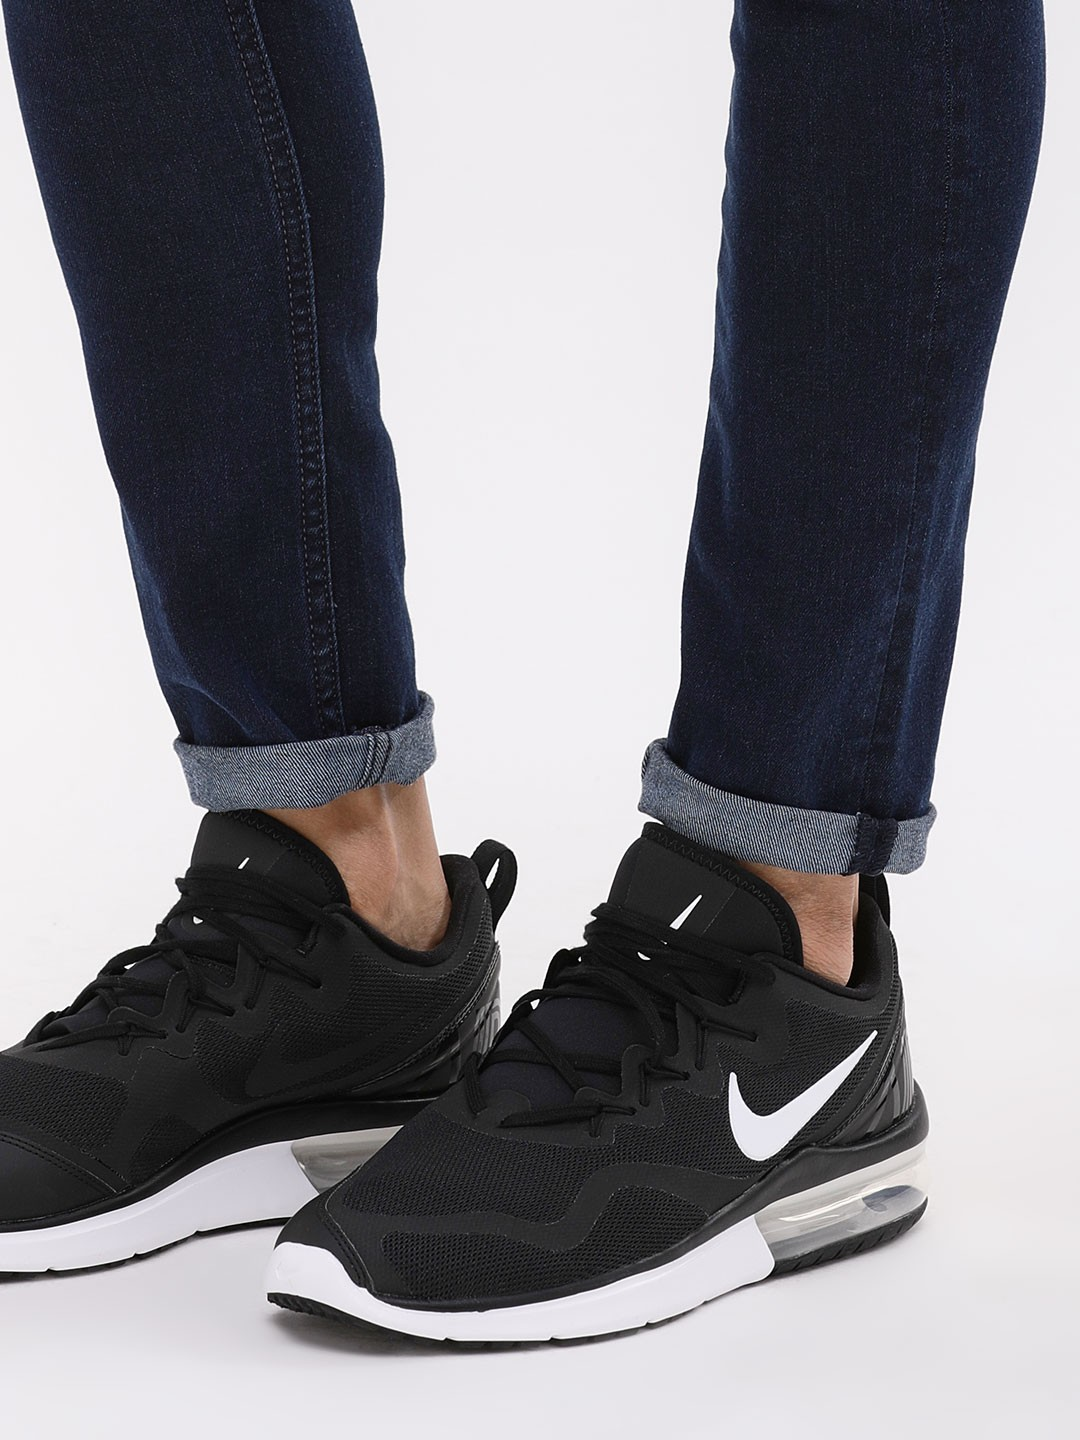 womens nike air max fury black shoes for discount